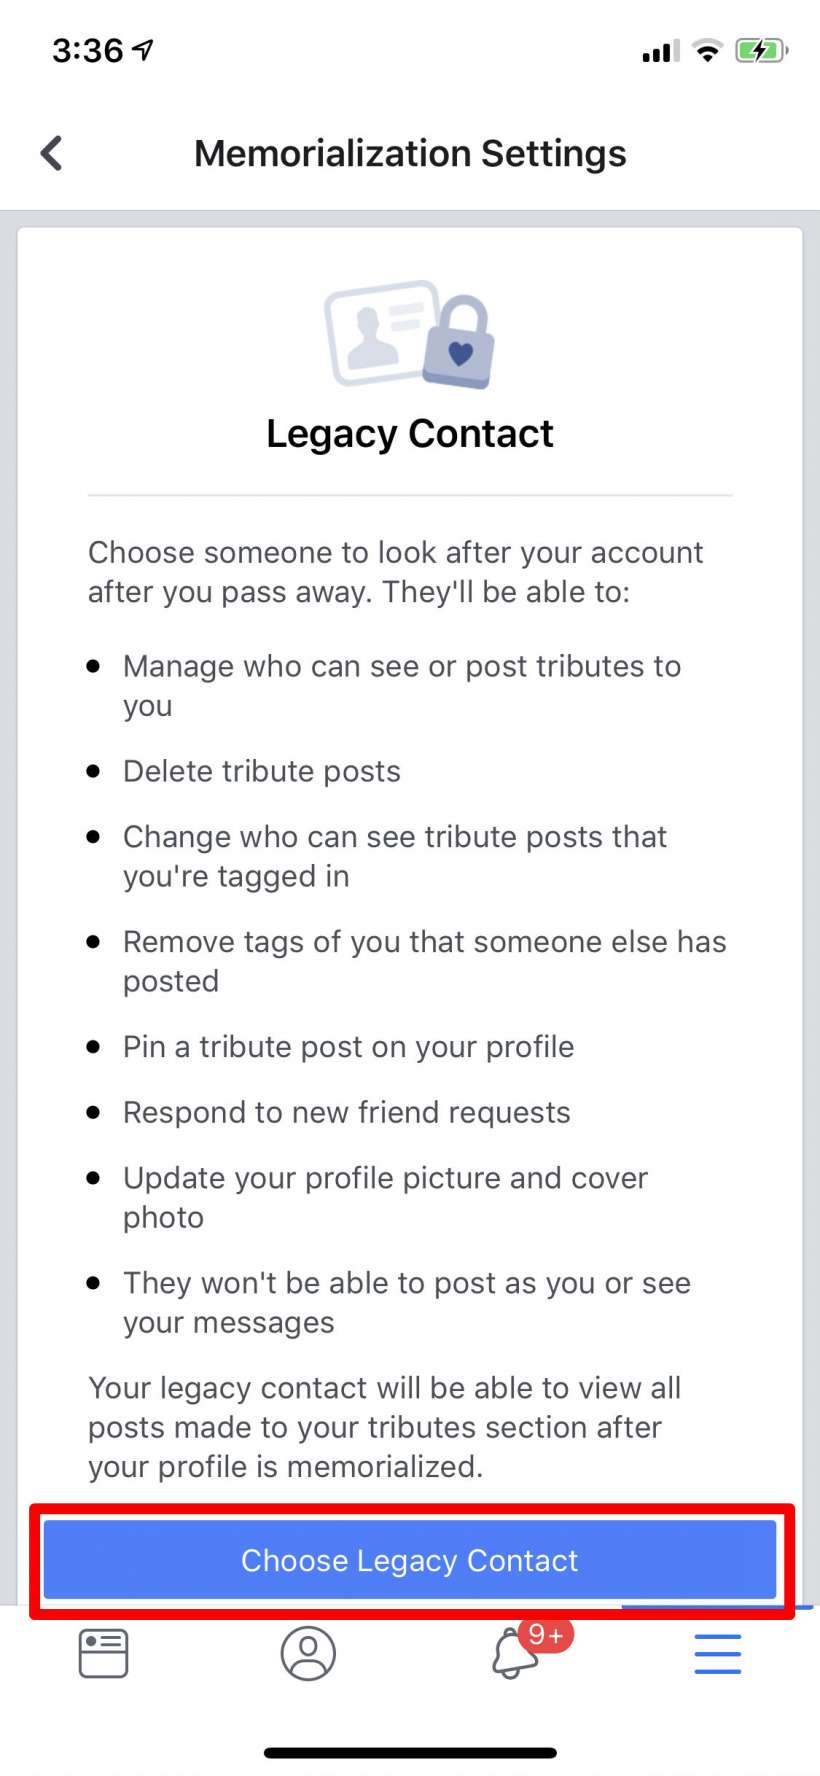 How to add a legacy contact and have your Facebook account deleted after you die.